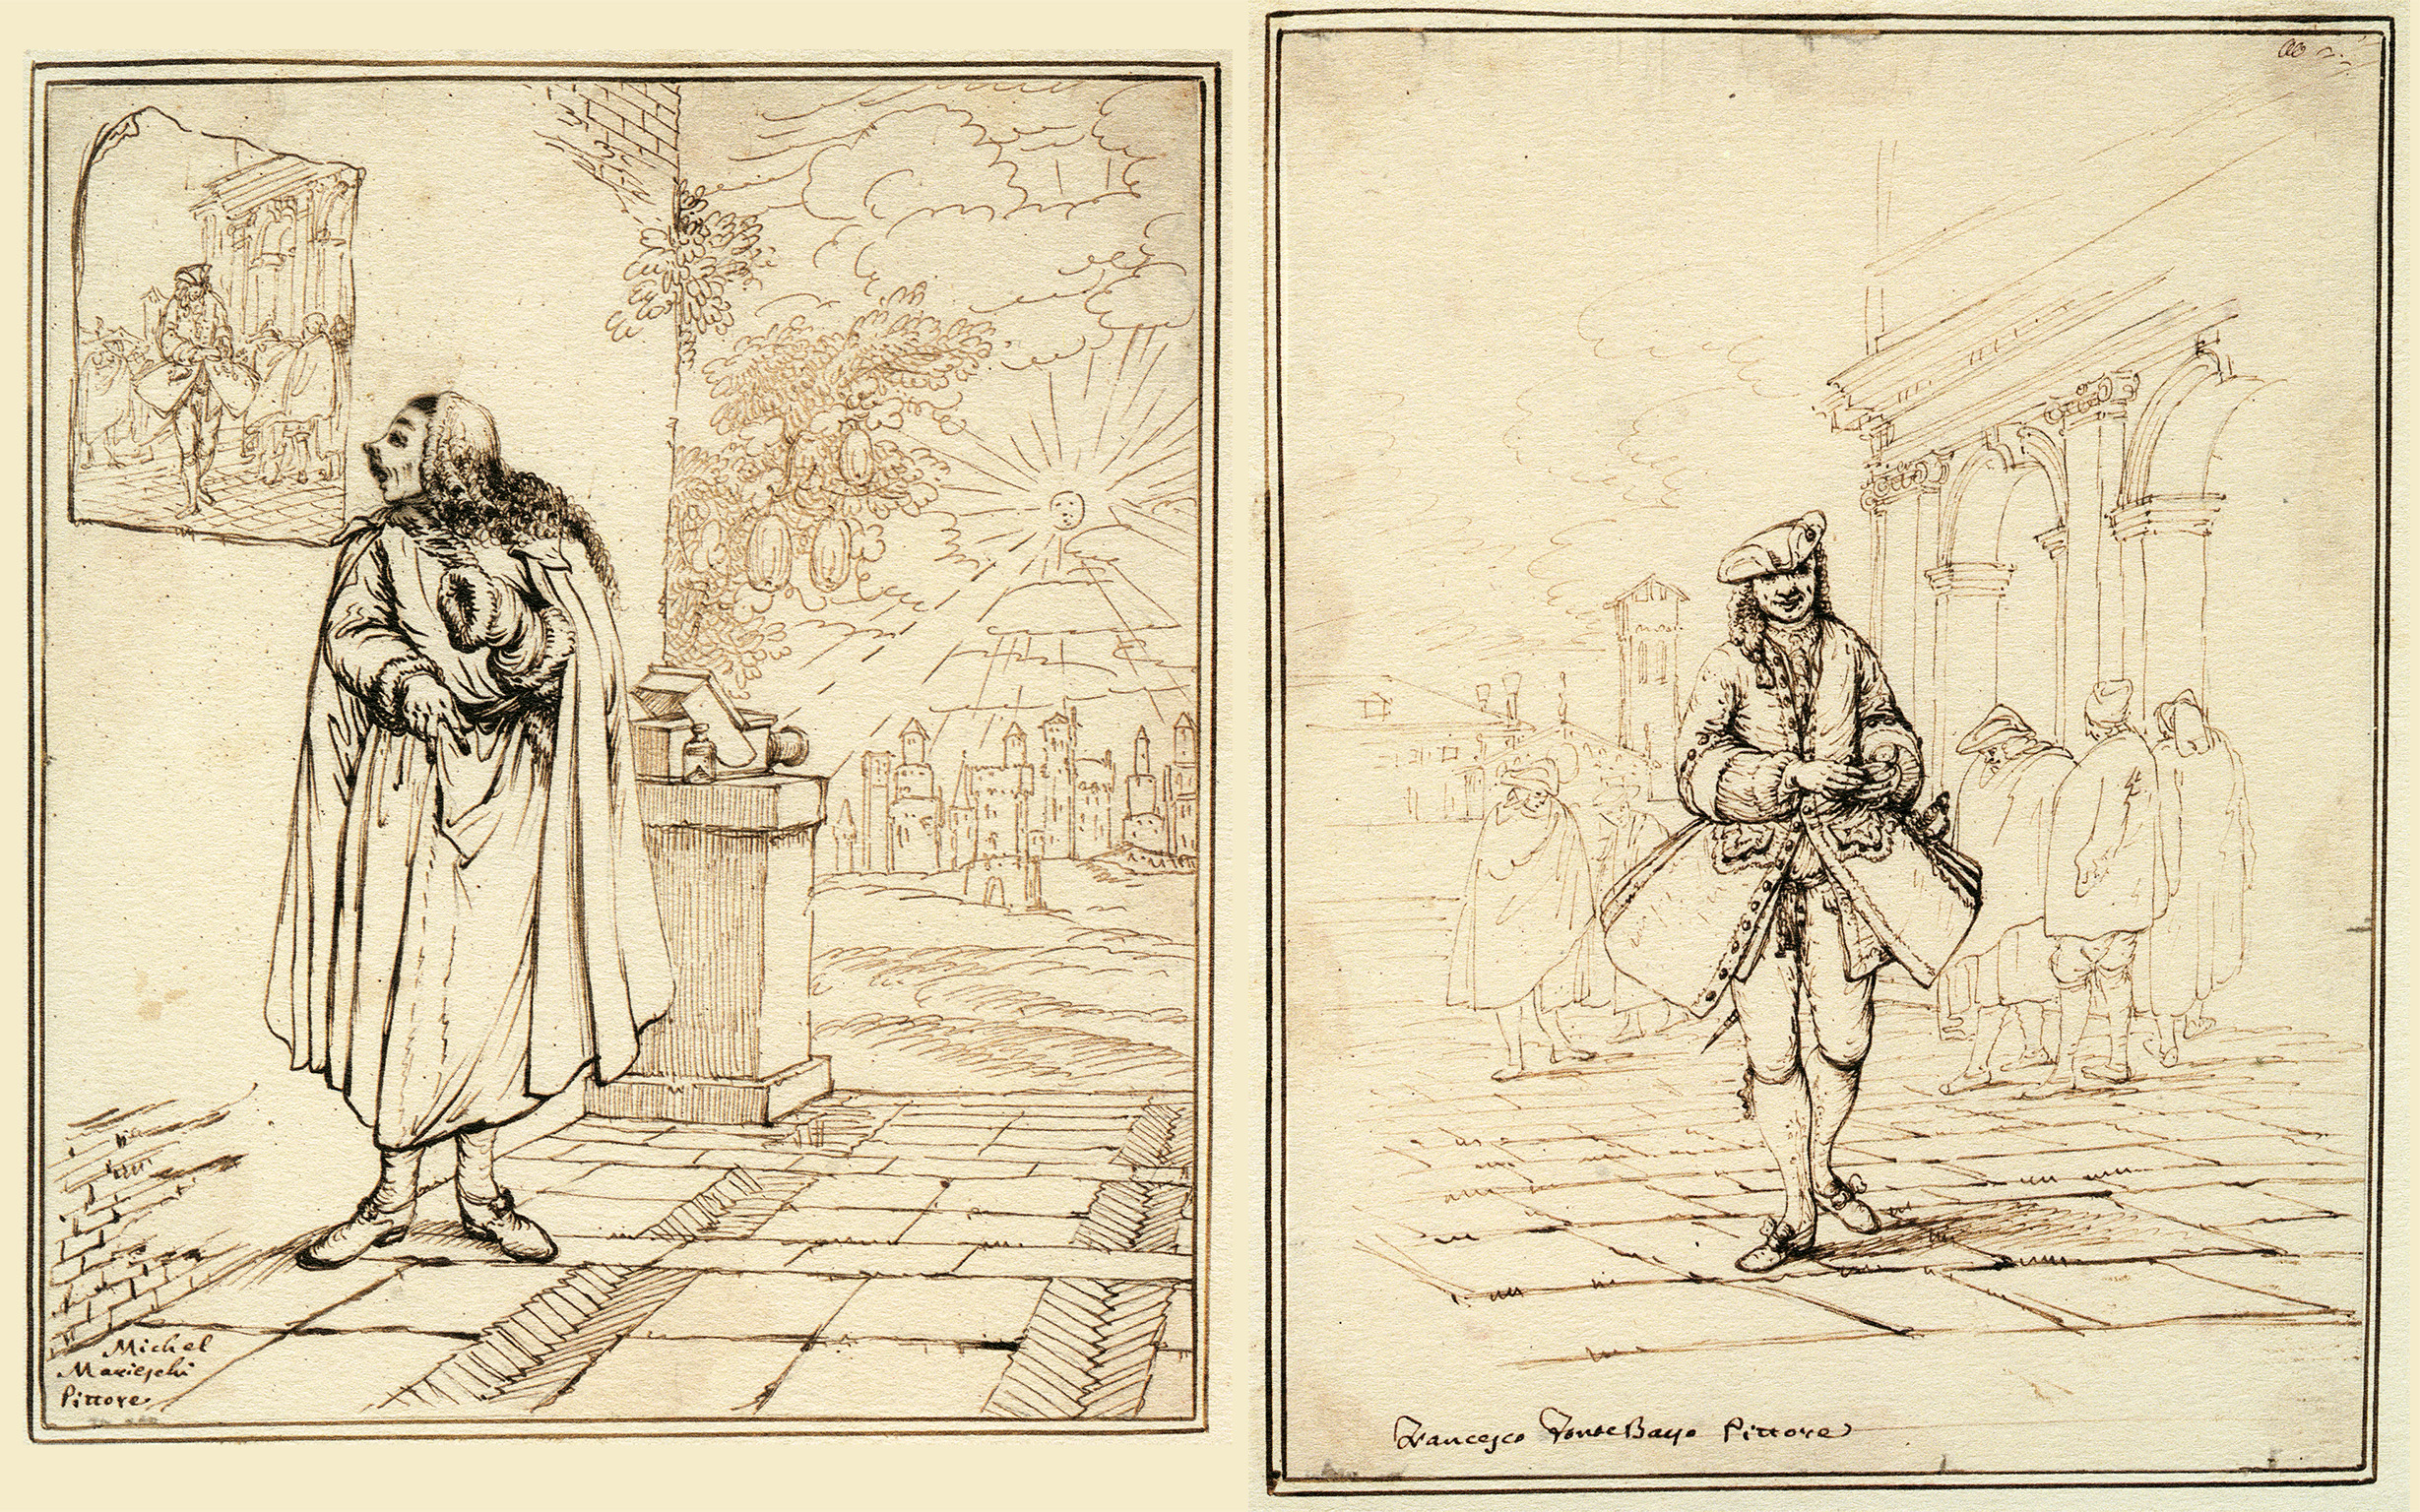 Two-part cartoon by Anton Maria Zanetti (the elder) showing view painter, Michele Marieschi, drawing hand hidden, looking in wonder at a hand-drawn figure on the wall. As if to add insult to injury, the Zanetti shows the confident looking figure on wall again in full in the second panel.